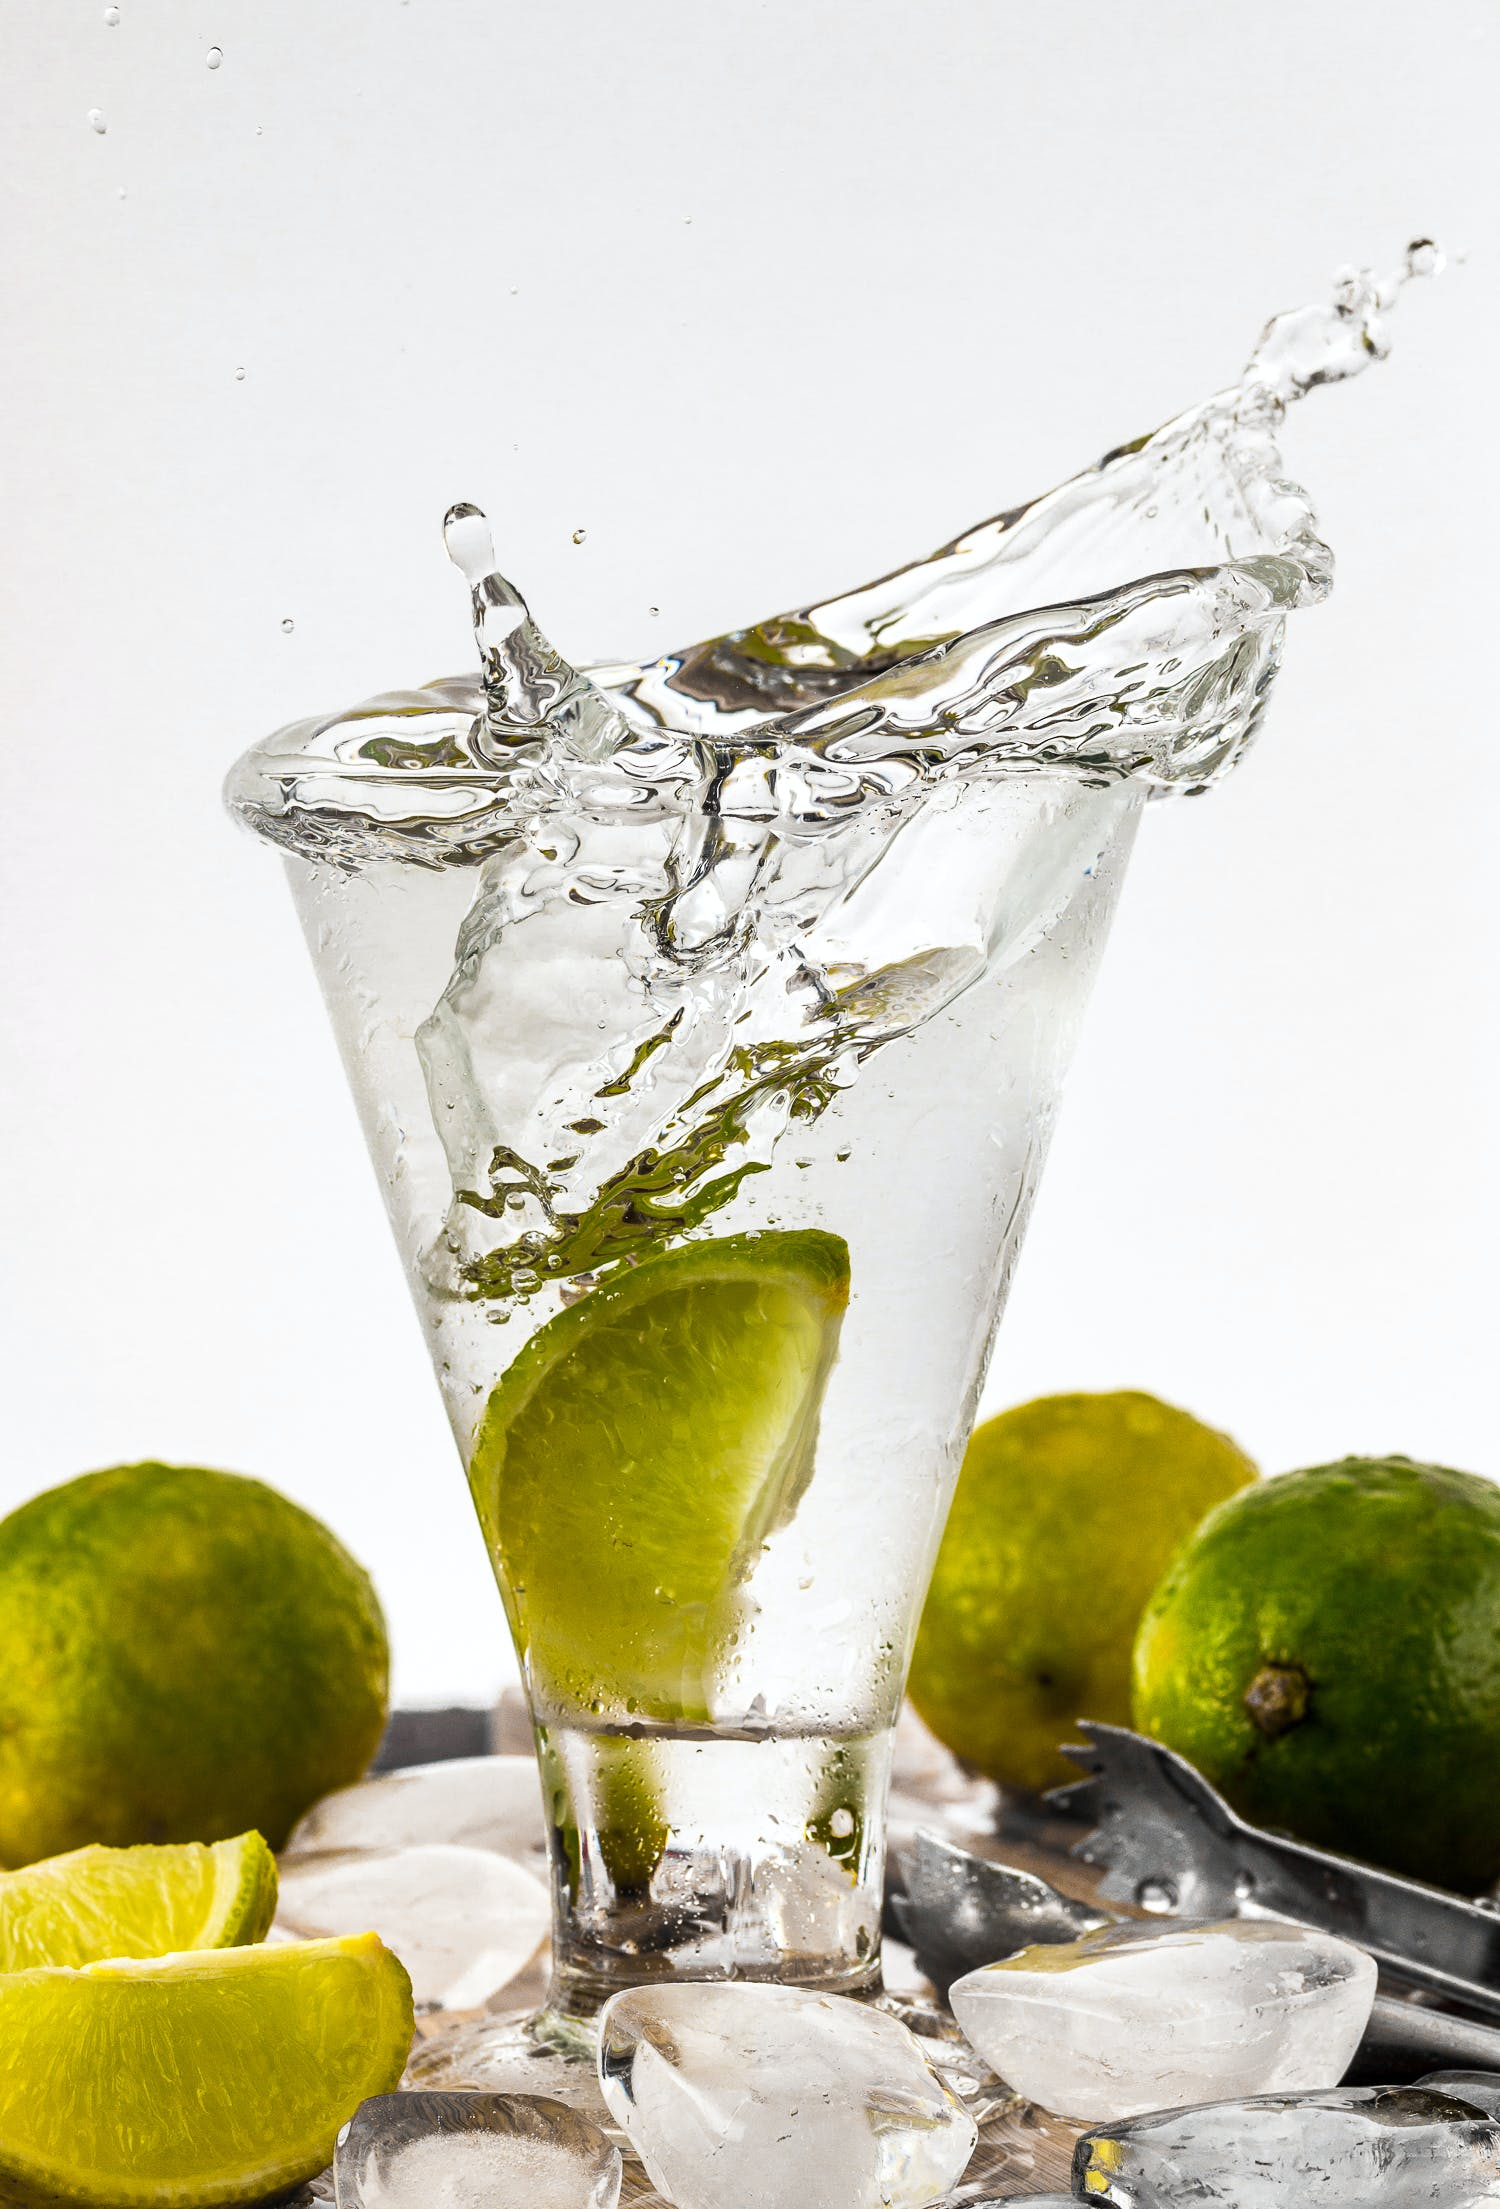 Water Filled Glass Cup With Sliced Lime